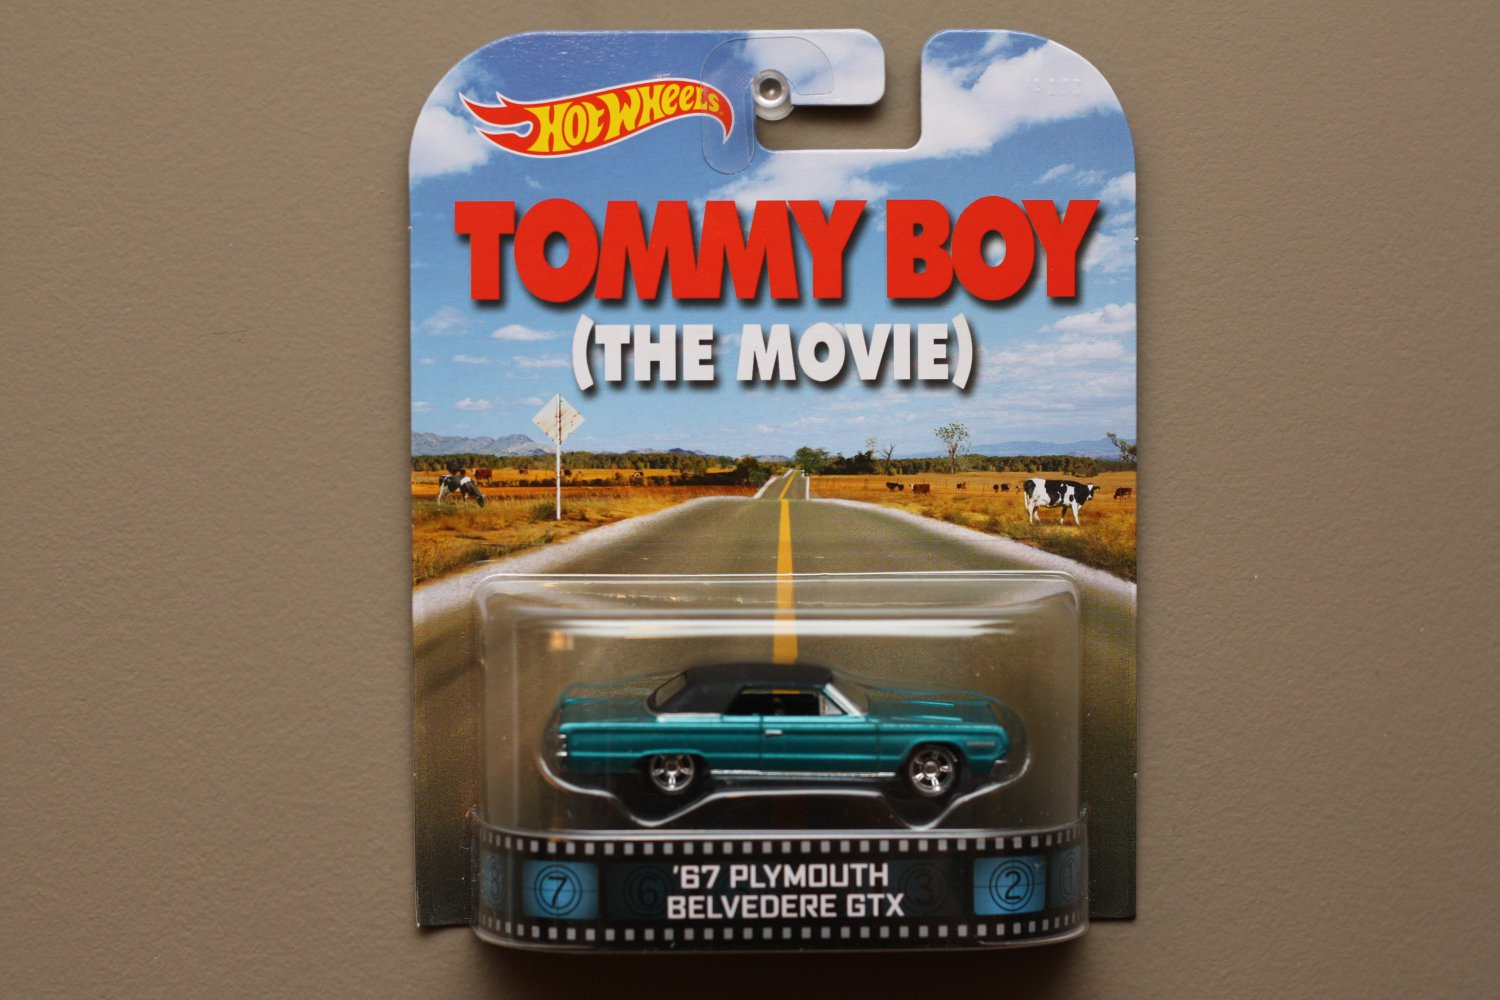 Hot Wheels 2014 Retro Entertainment '67 Plymouth Belvedere GTX (Tommy Boy)